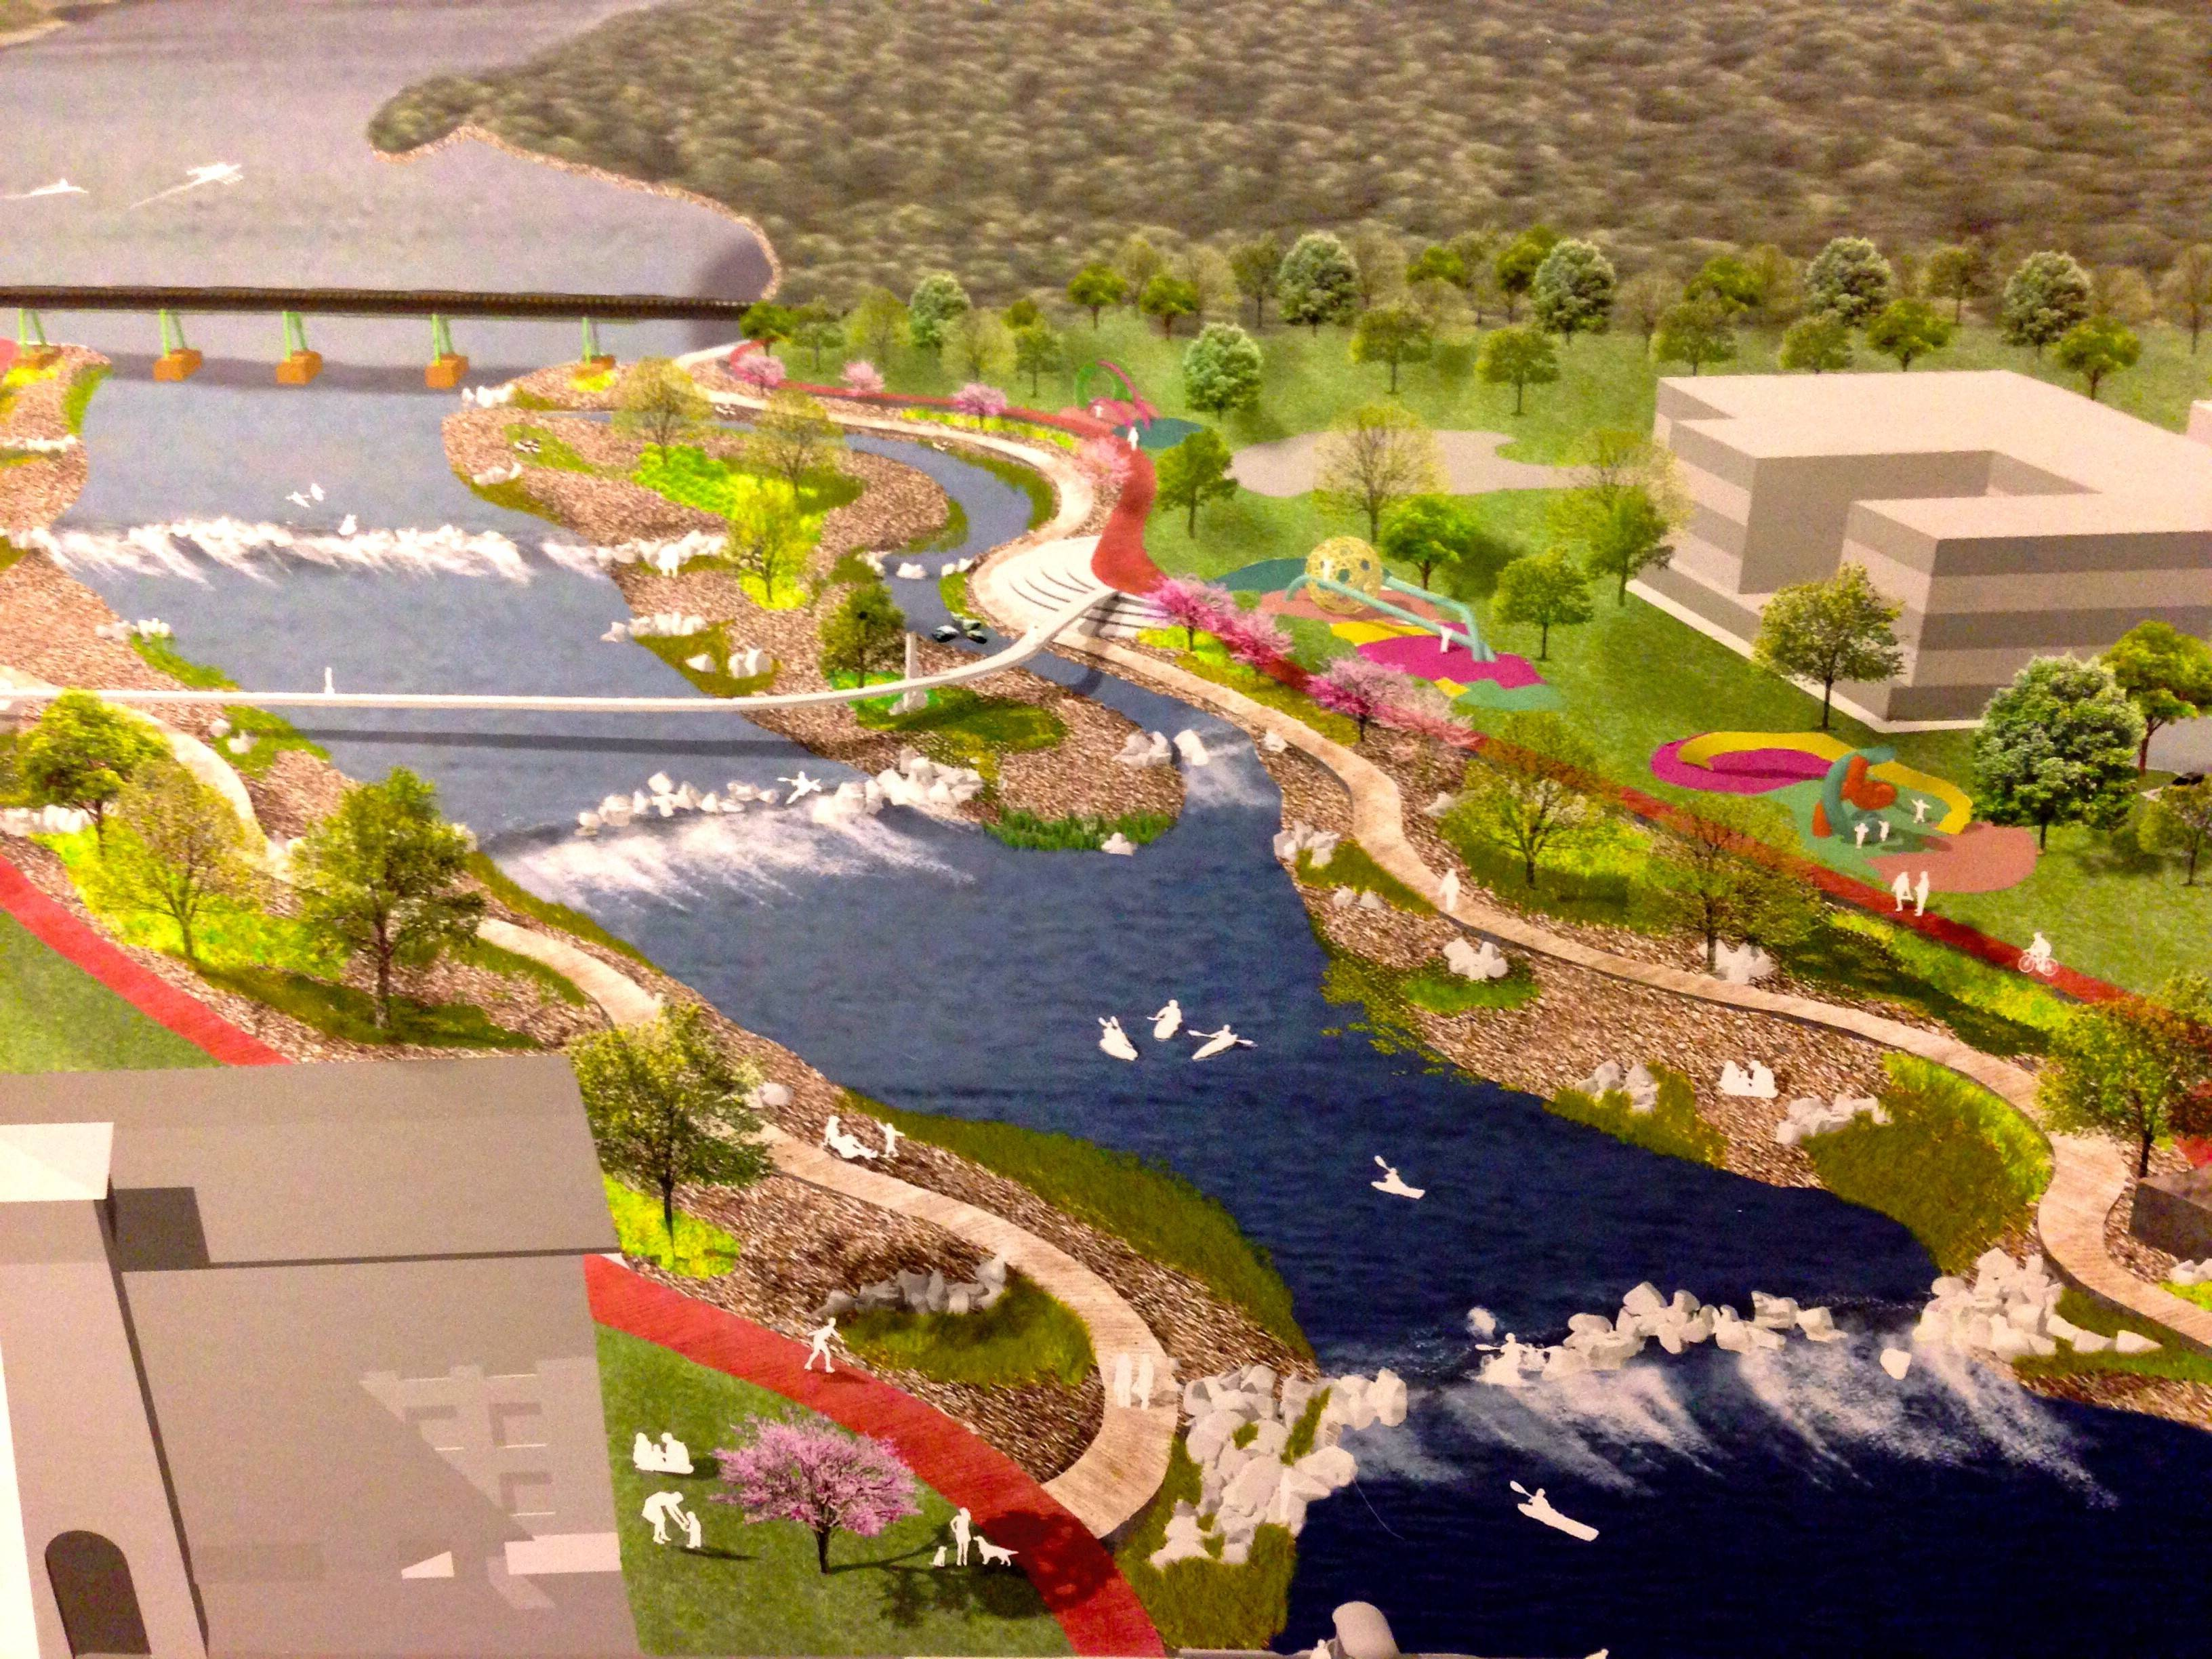 Report: Fox River plan likely to boost tourism in St. Charles